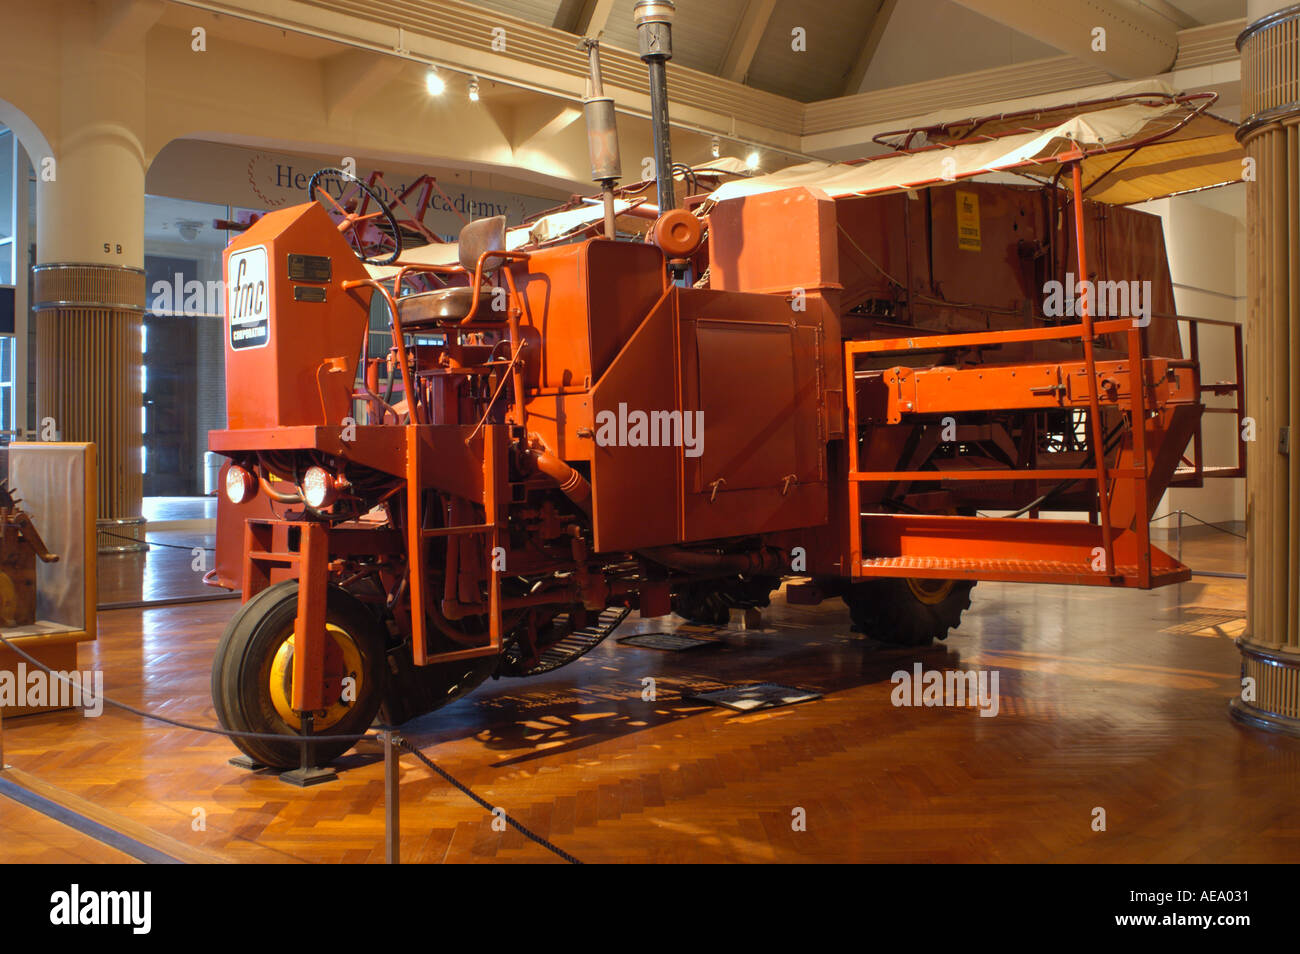 1969 FMC Cascade tomato harvester at the Henry Ford Museum in Dearborn Michigan - Stock Image